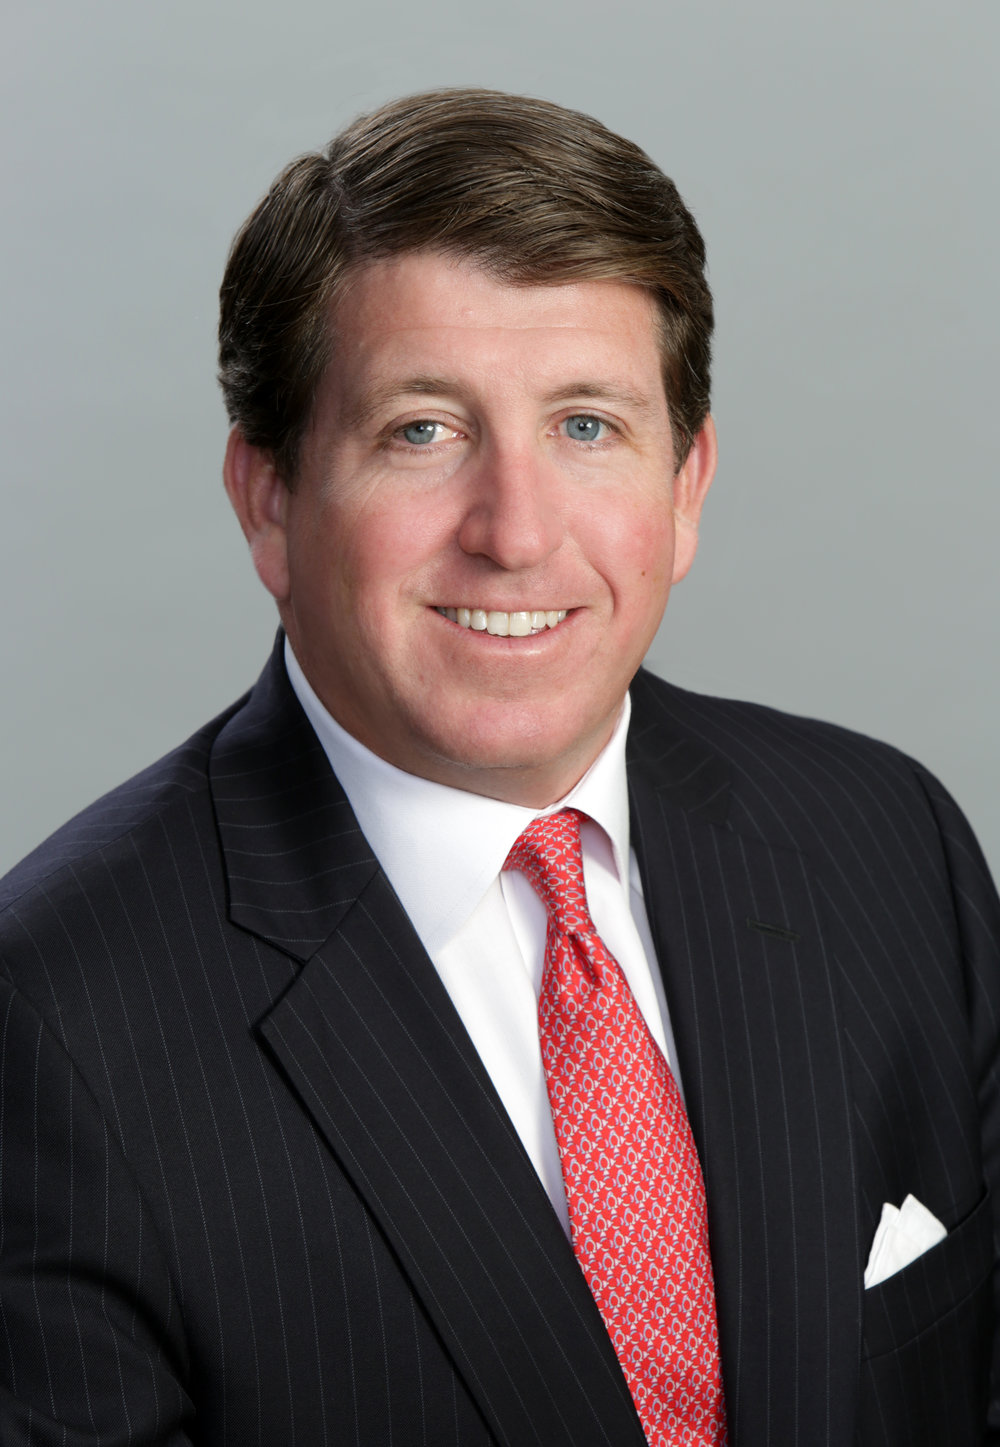 Christopher Merrill, Co-Founder & CEO, Harrison Street